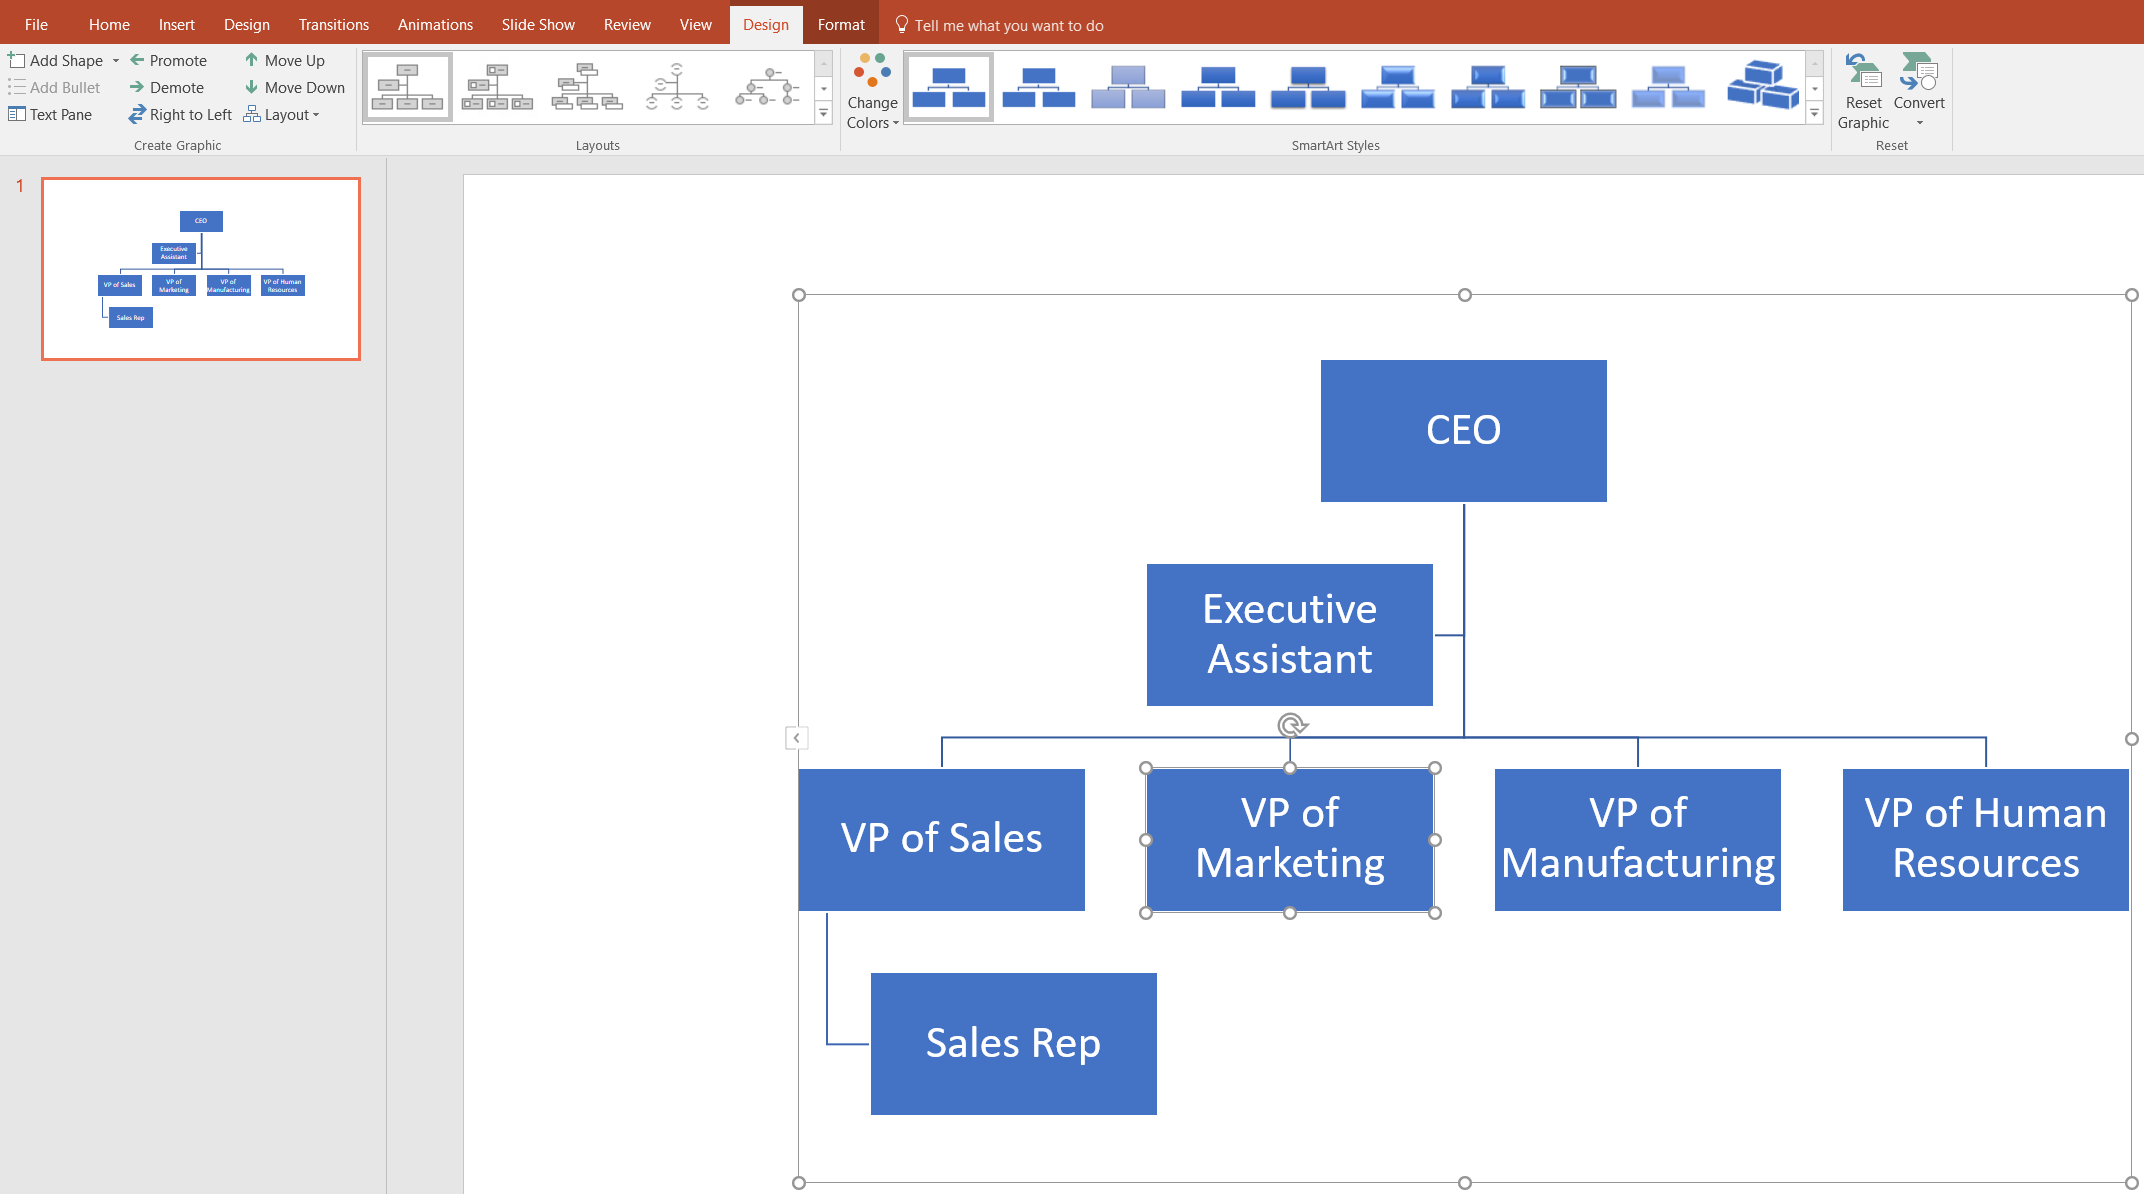 power point org chart template - how to make an org chart in powerpoint lucidchart